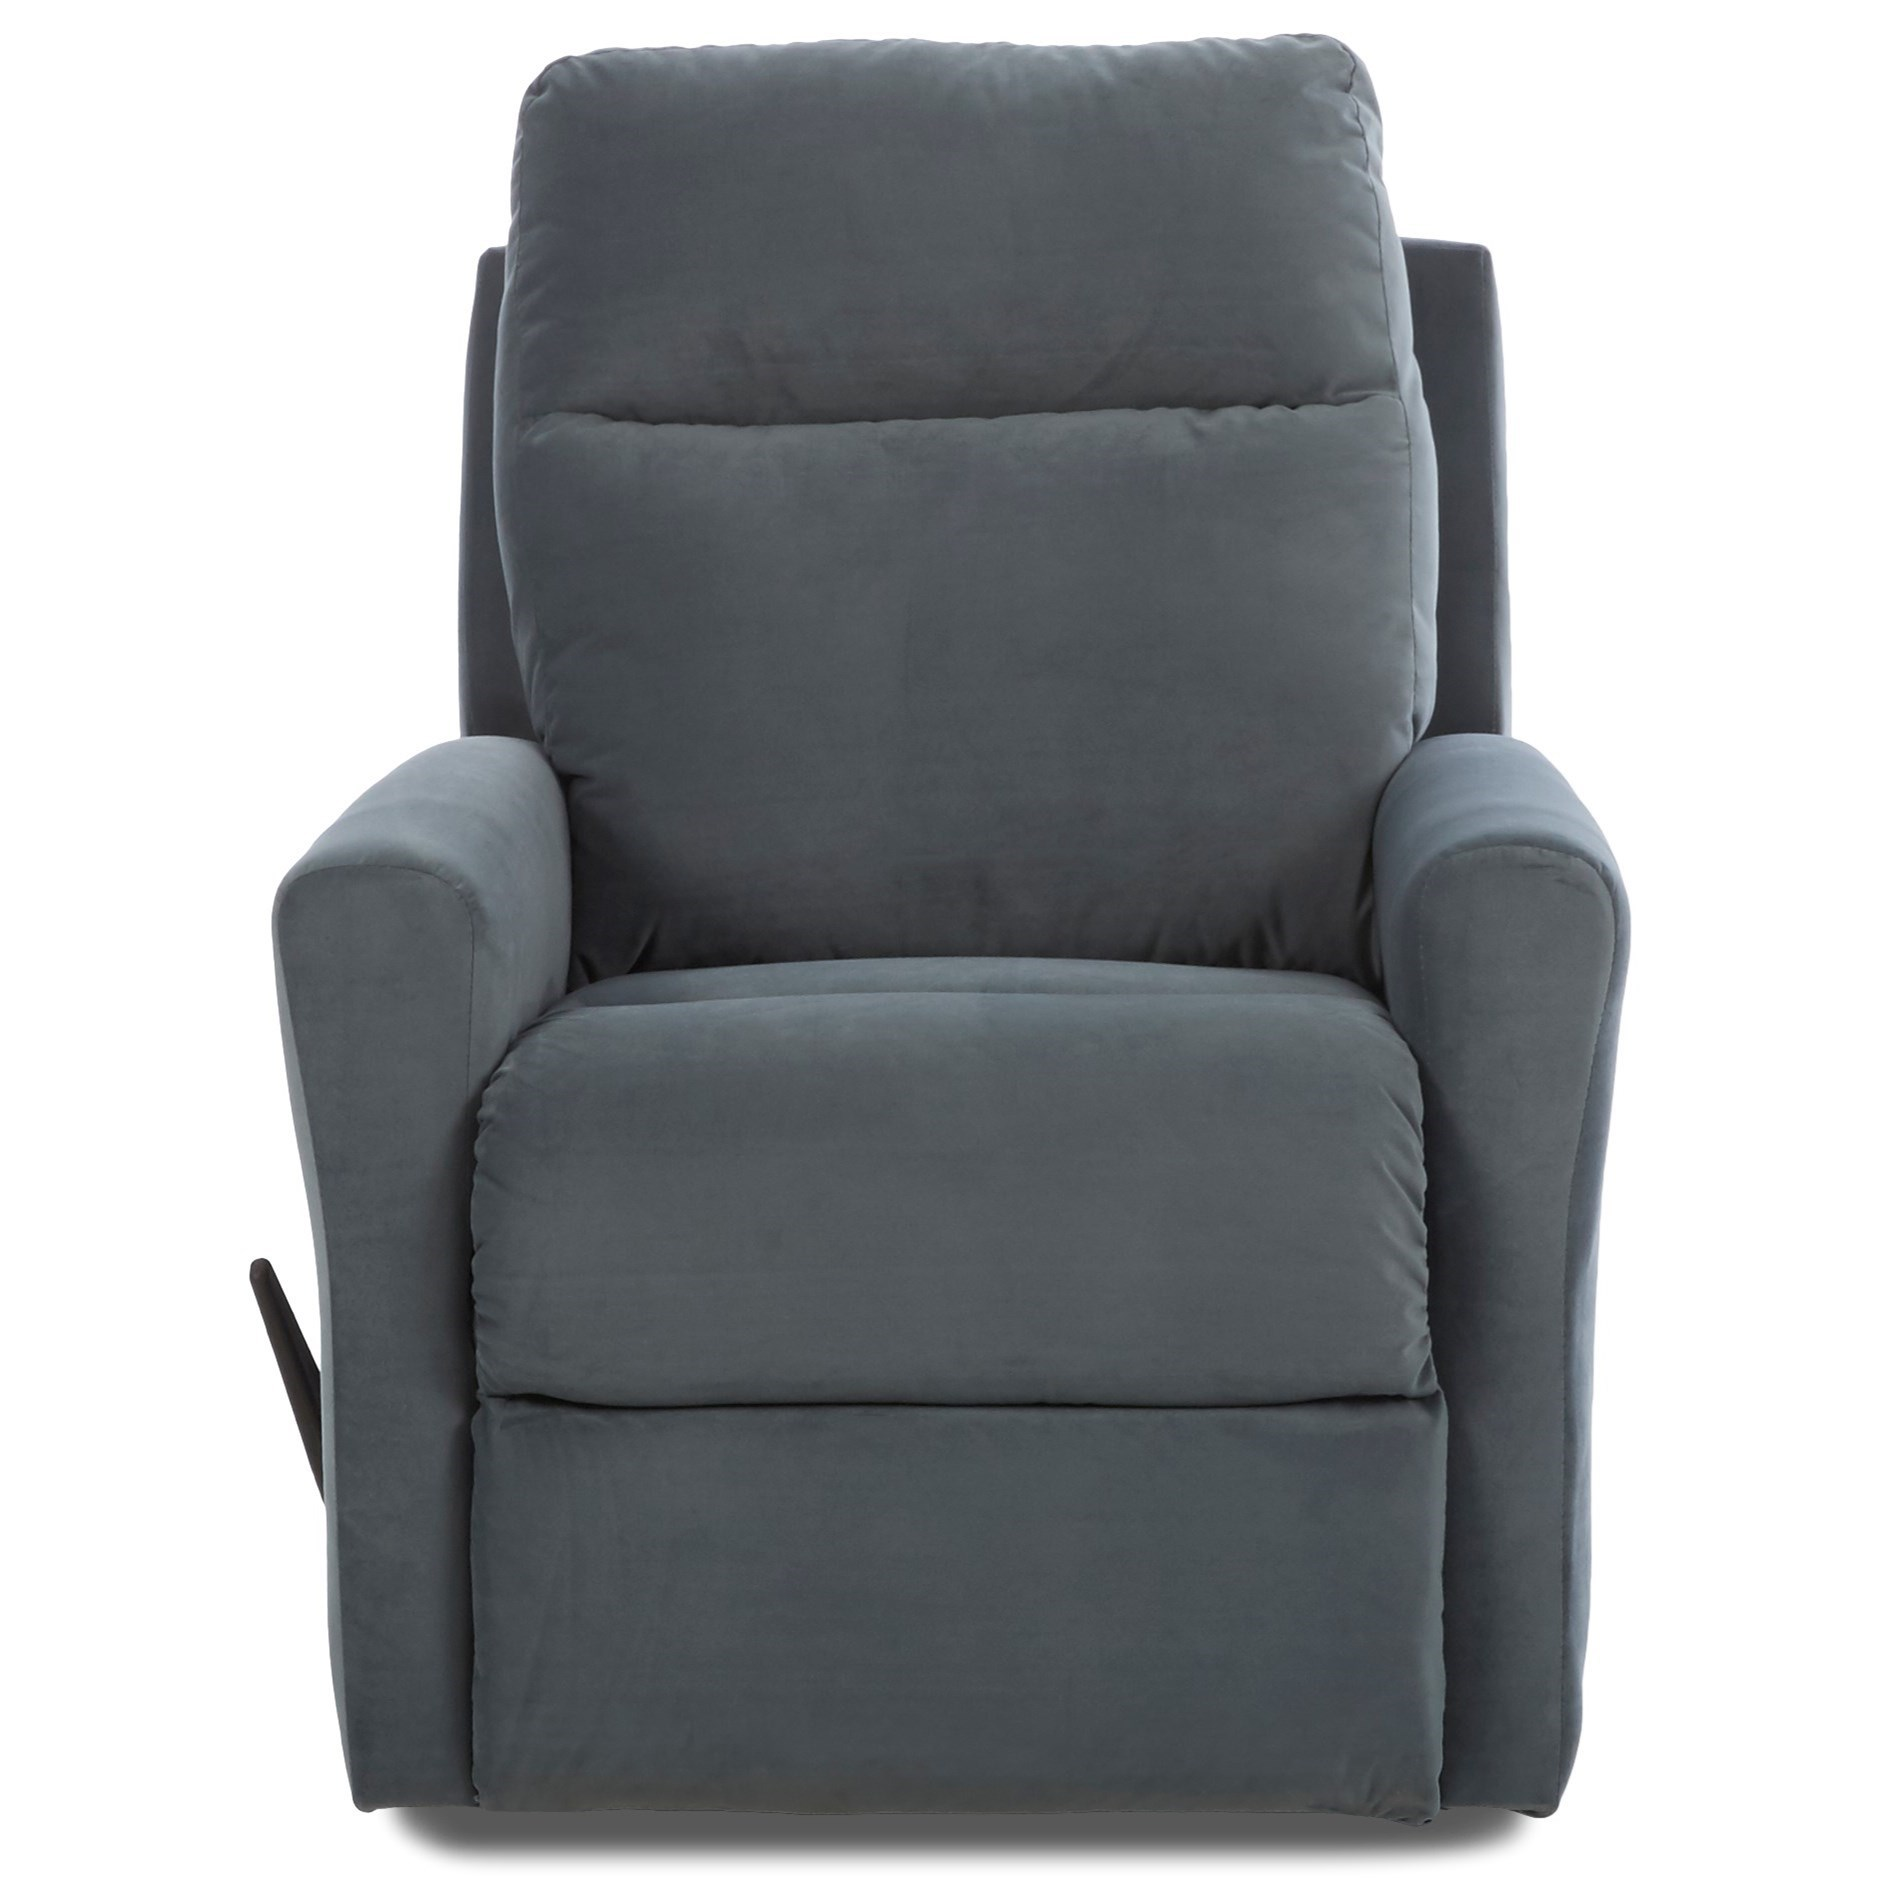 rocking reclining chair home chairs back problems klaussner ikon 91603h srrc swivel